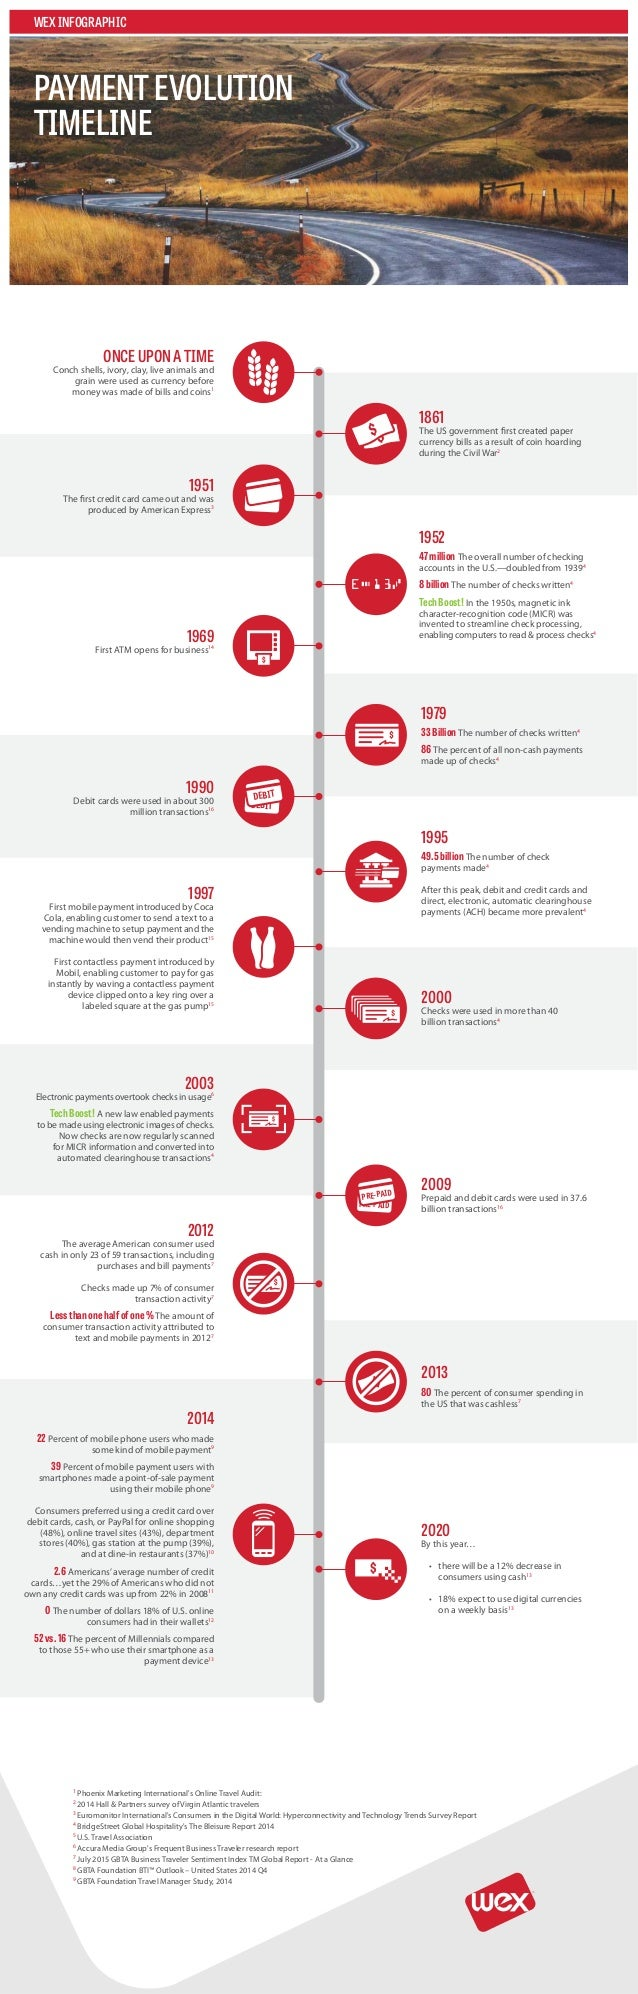 WEXINFOGRAPHIC PAYMENTEVOLUTION TIMELINE 1 Phoenix Marketing International's Online Travel Audit: 2 2014 Hall & Partners s...